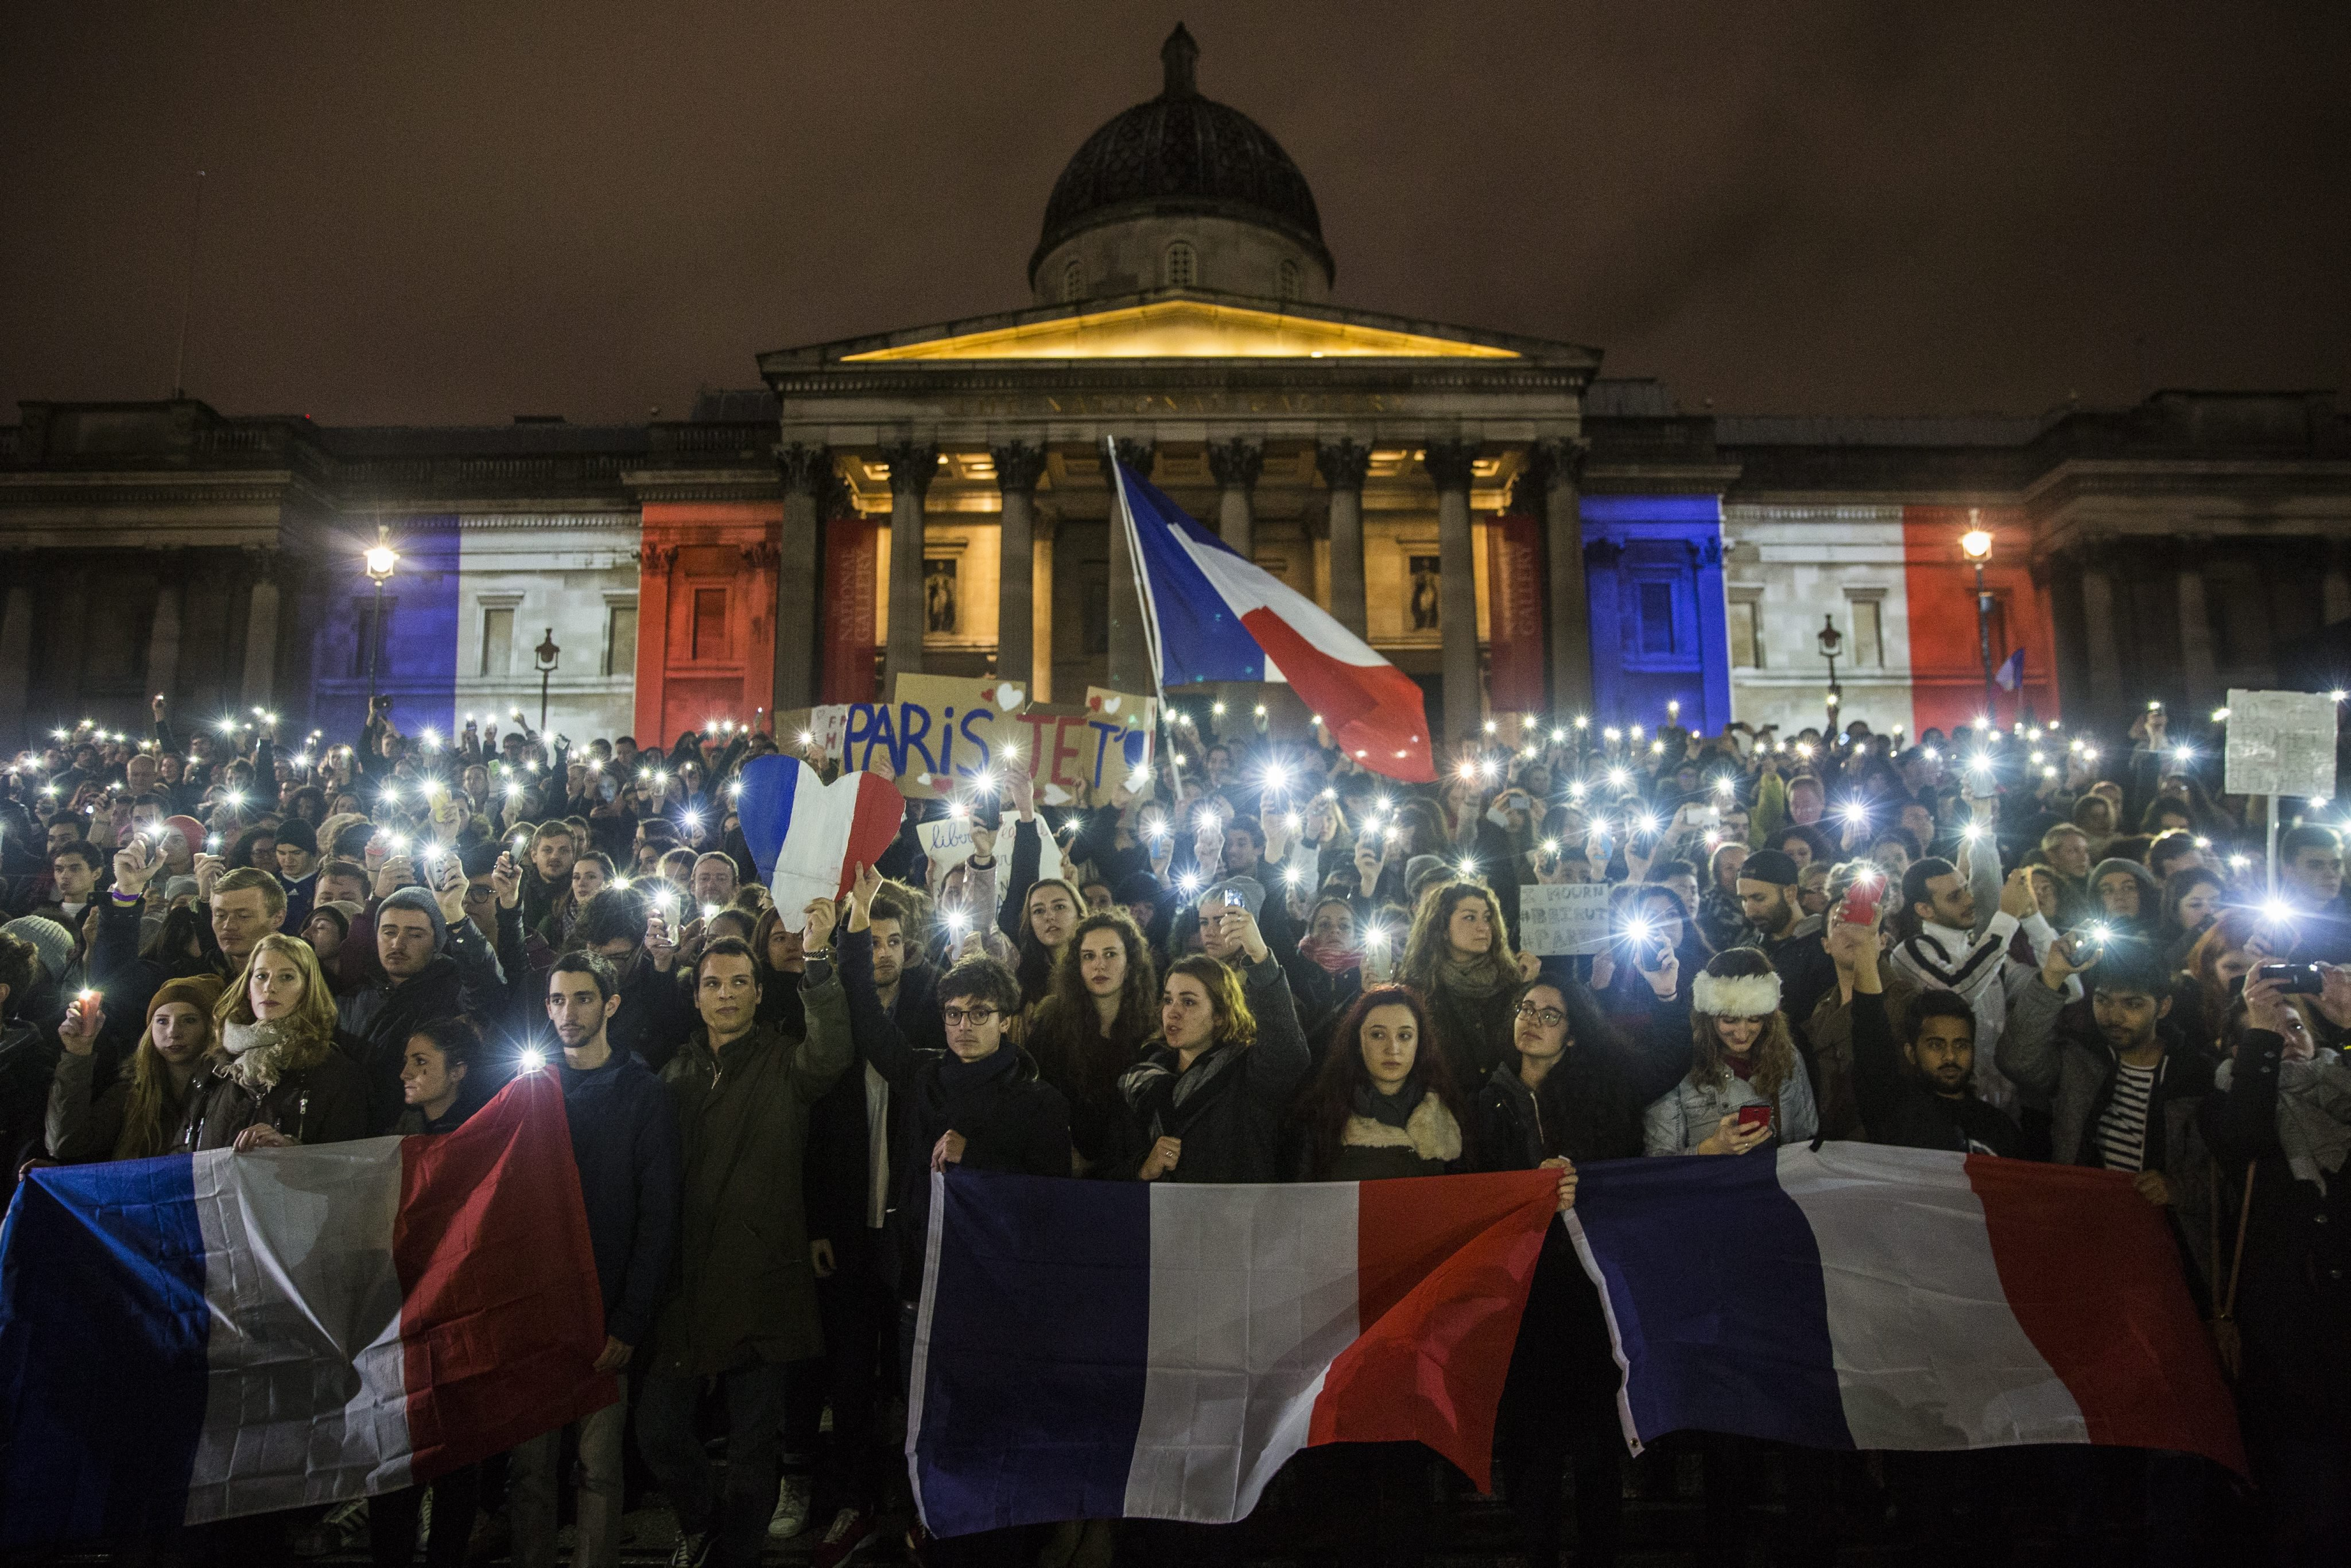 Hundreds of people attend a vigil for the victims of the Paris attacks in Trafalgar Square, central London Nov. 14, 2015.